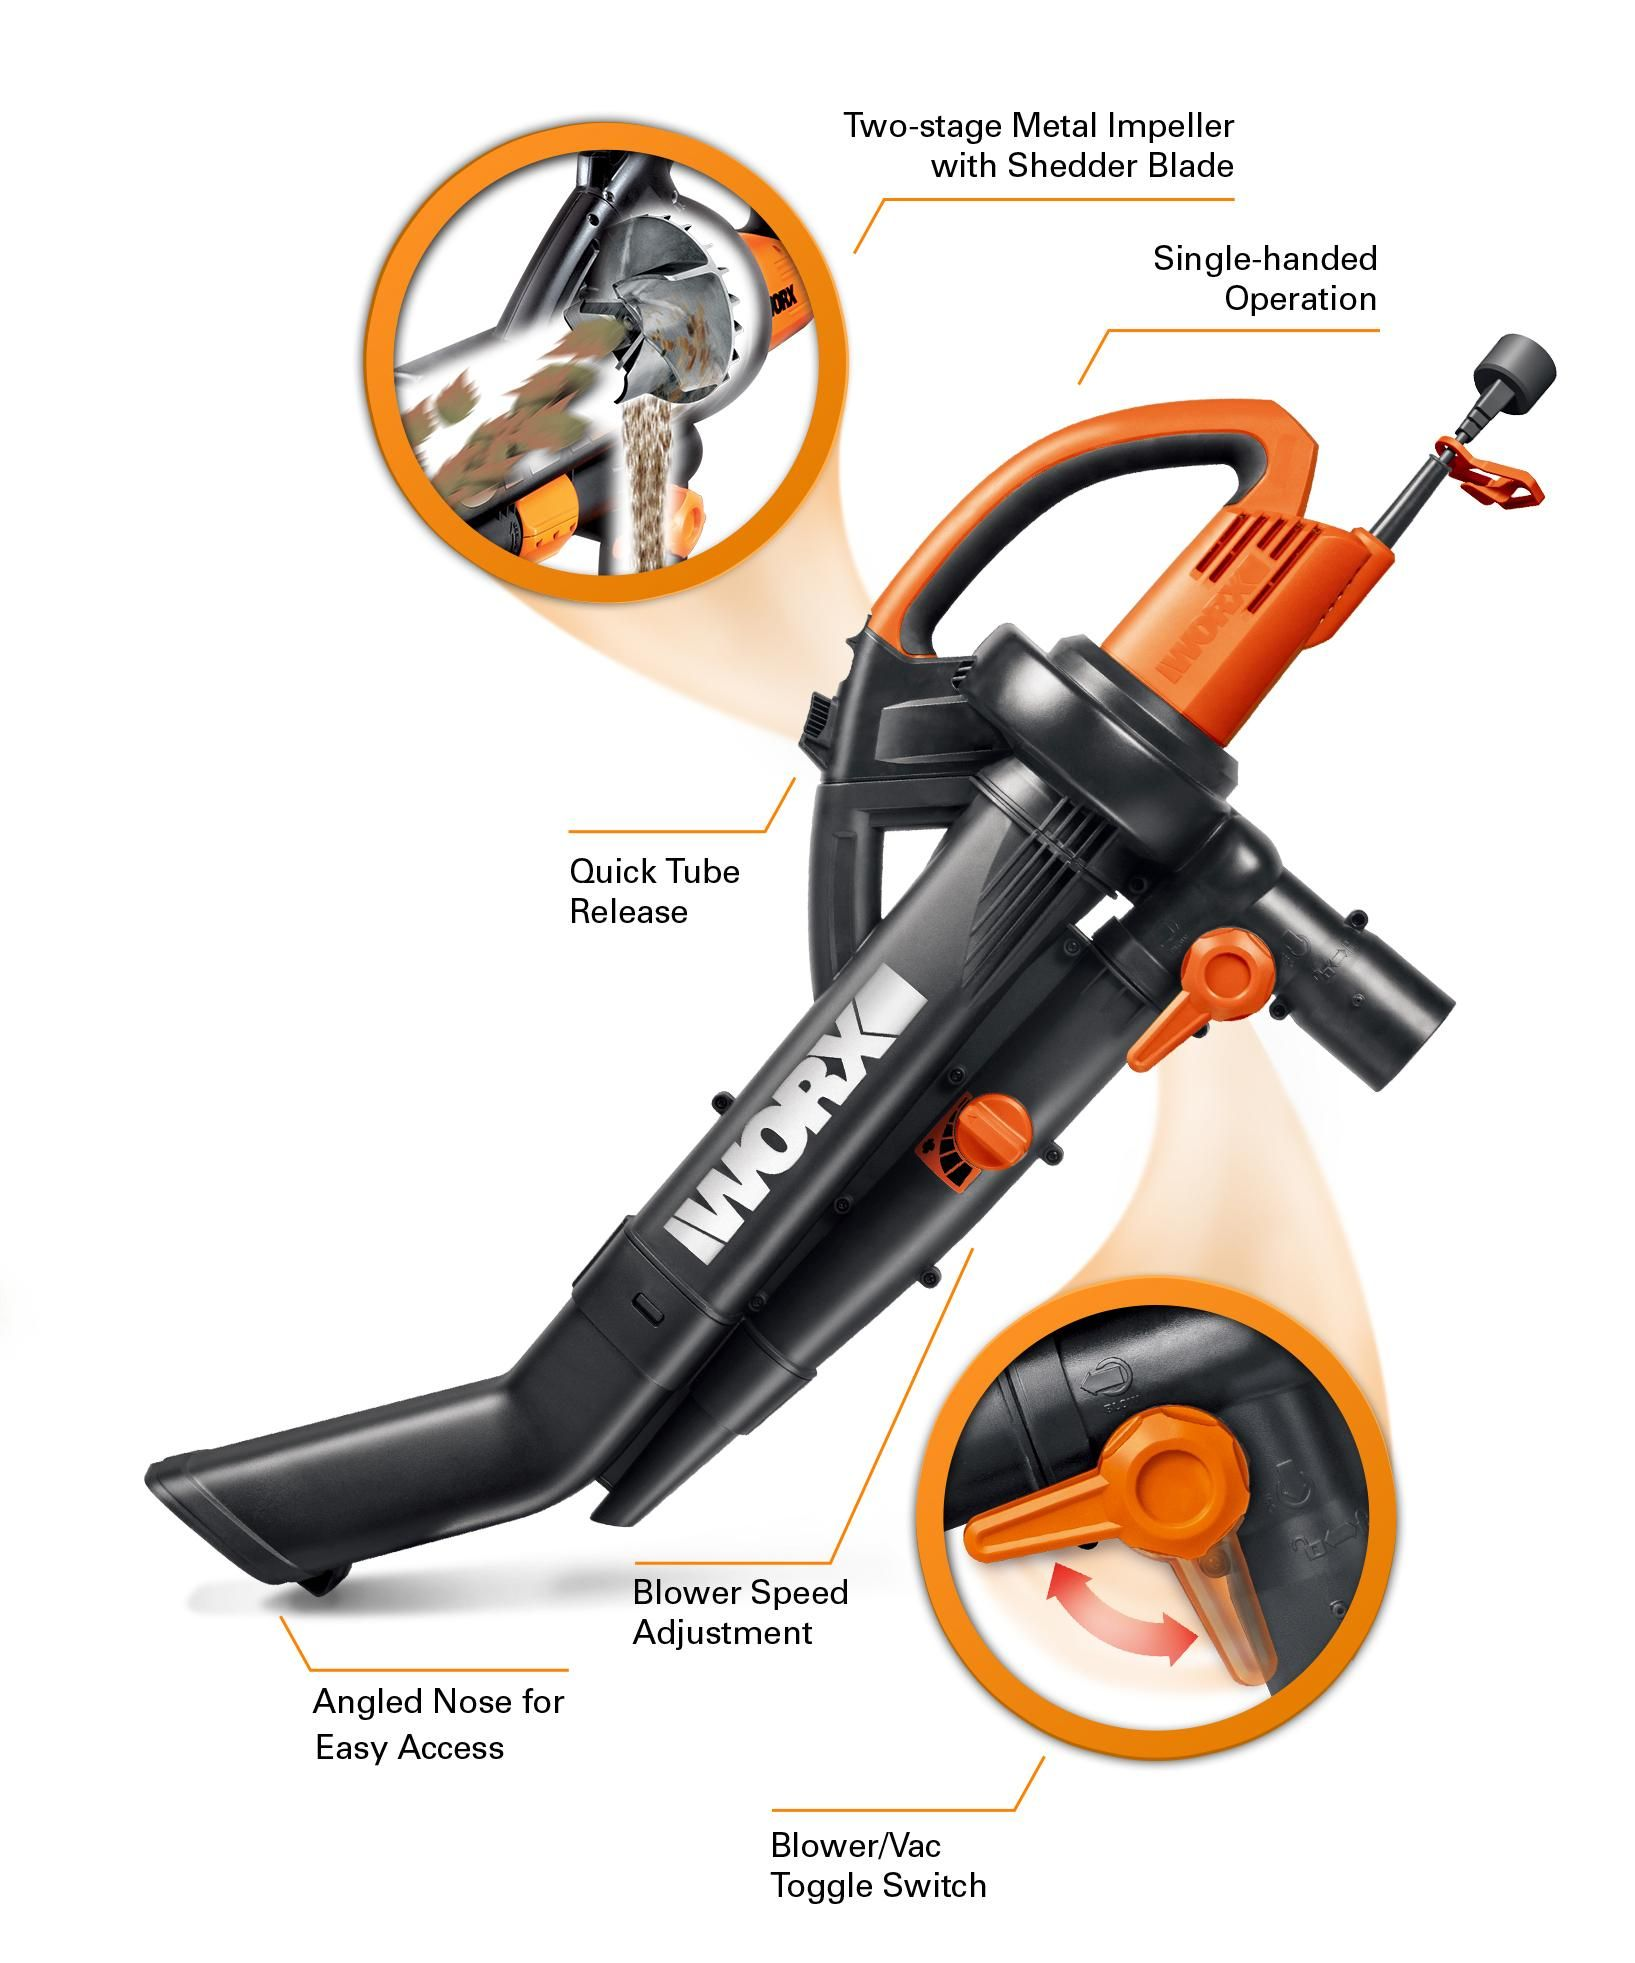 Worx Trivac 12 Amp 3 In One Blower Mulcher Vacuum With Metal Impeller 210 Mph 350 Cfm Adjustable Output And Collection Bag Wg509 Mulching Blowers Vacuums